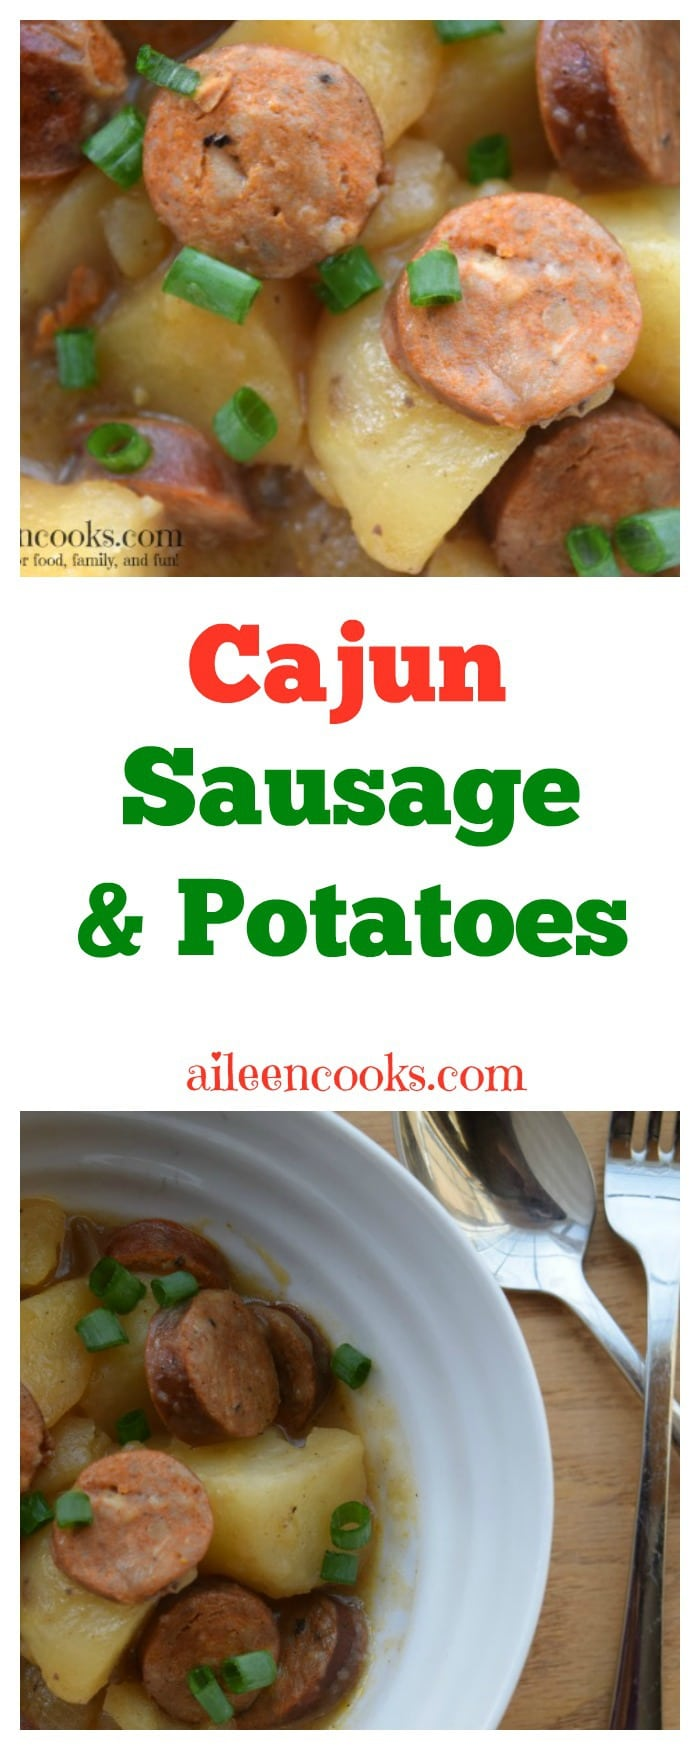 Crockpot Cajun Sausage and Potatoes is the perfect 5 ingredient slow cooker recipe you have been looking for! Recipe from aileencooks.com